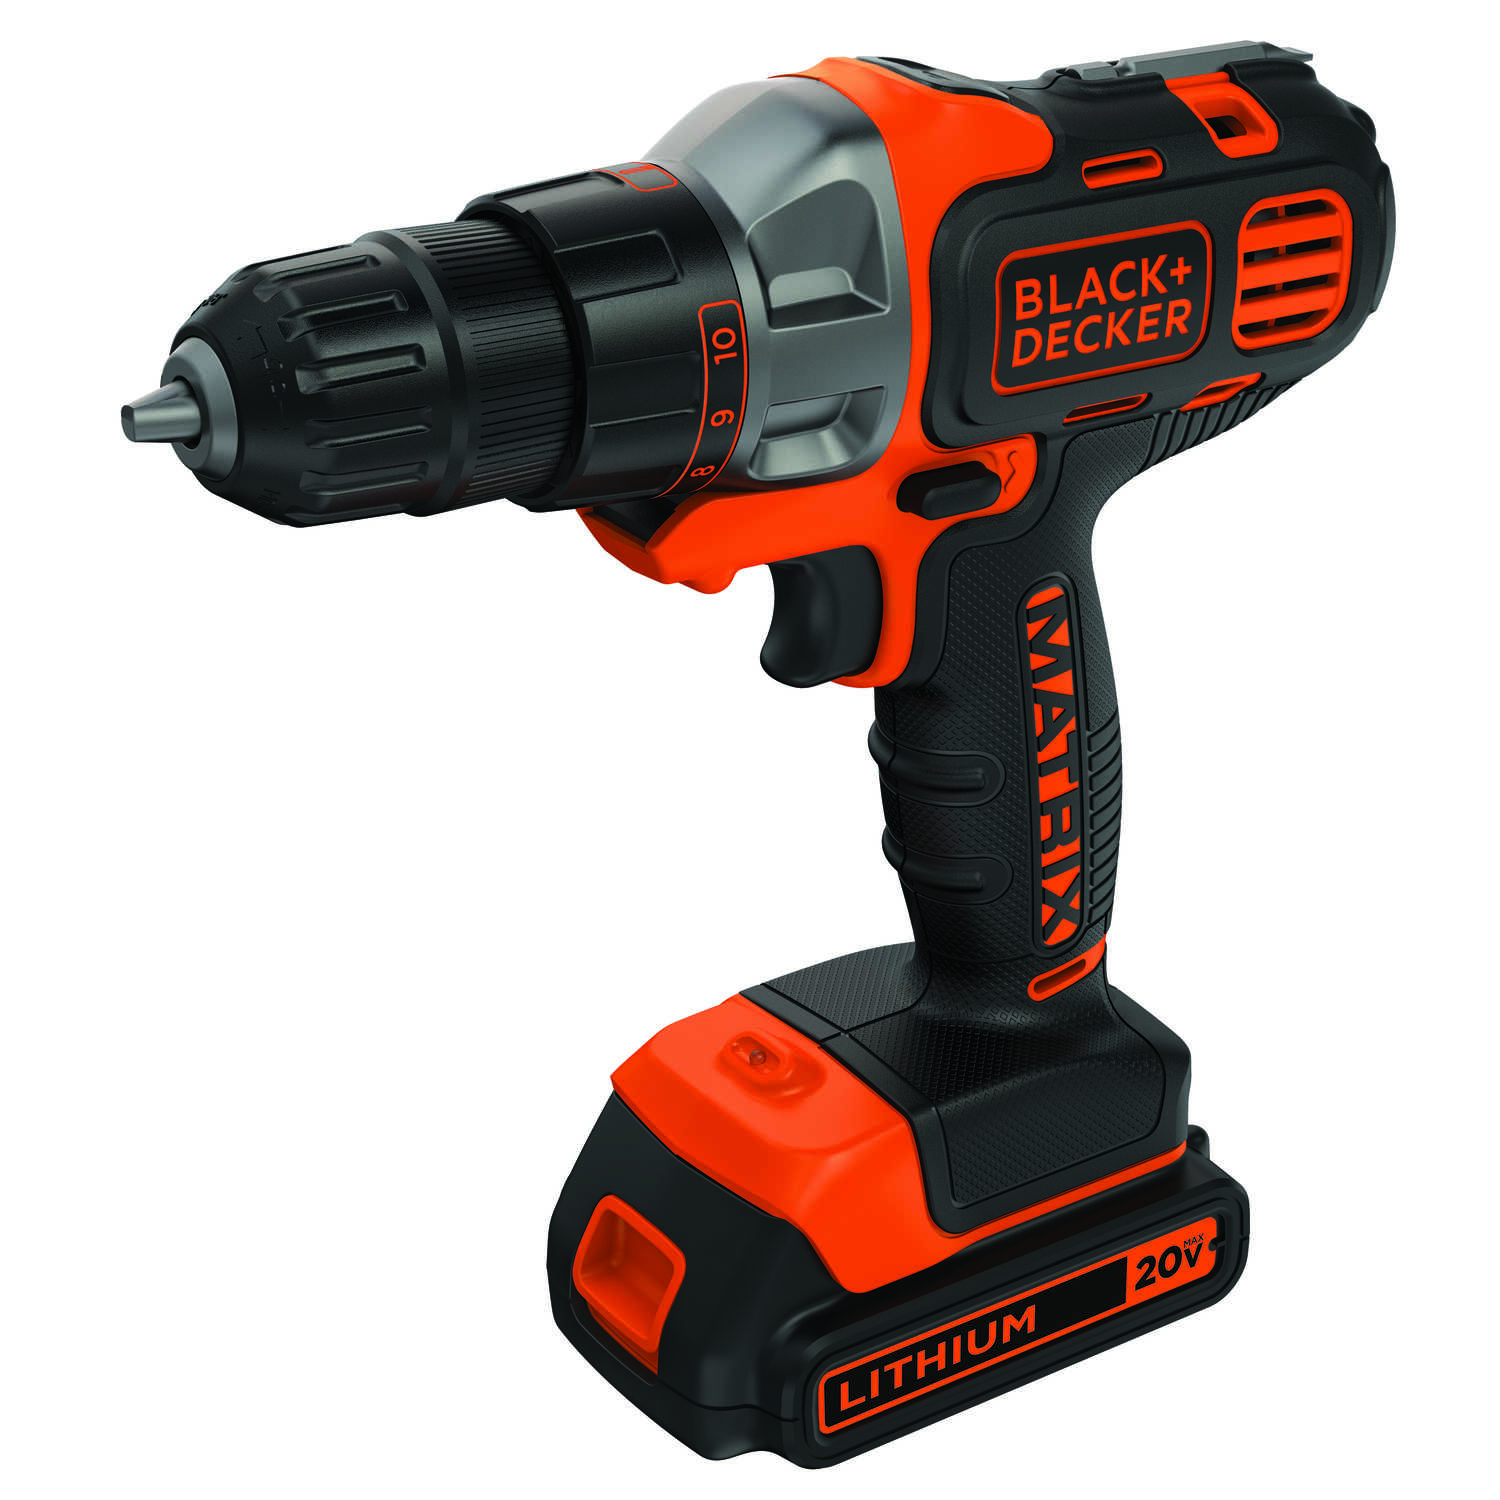 Black and Decker  MATRIX  20 volt 3/8 in. Cordless Compact Drill/Driver  Kit 800 rpm 1